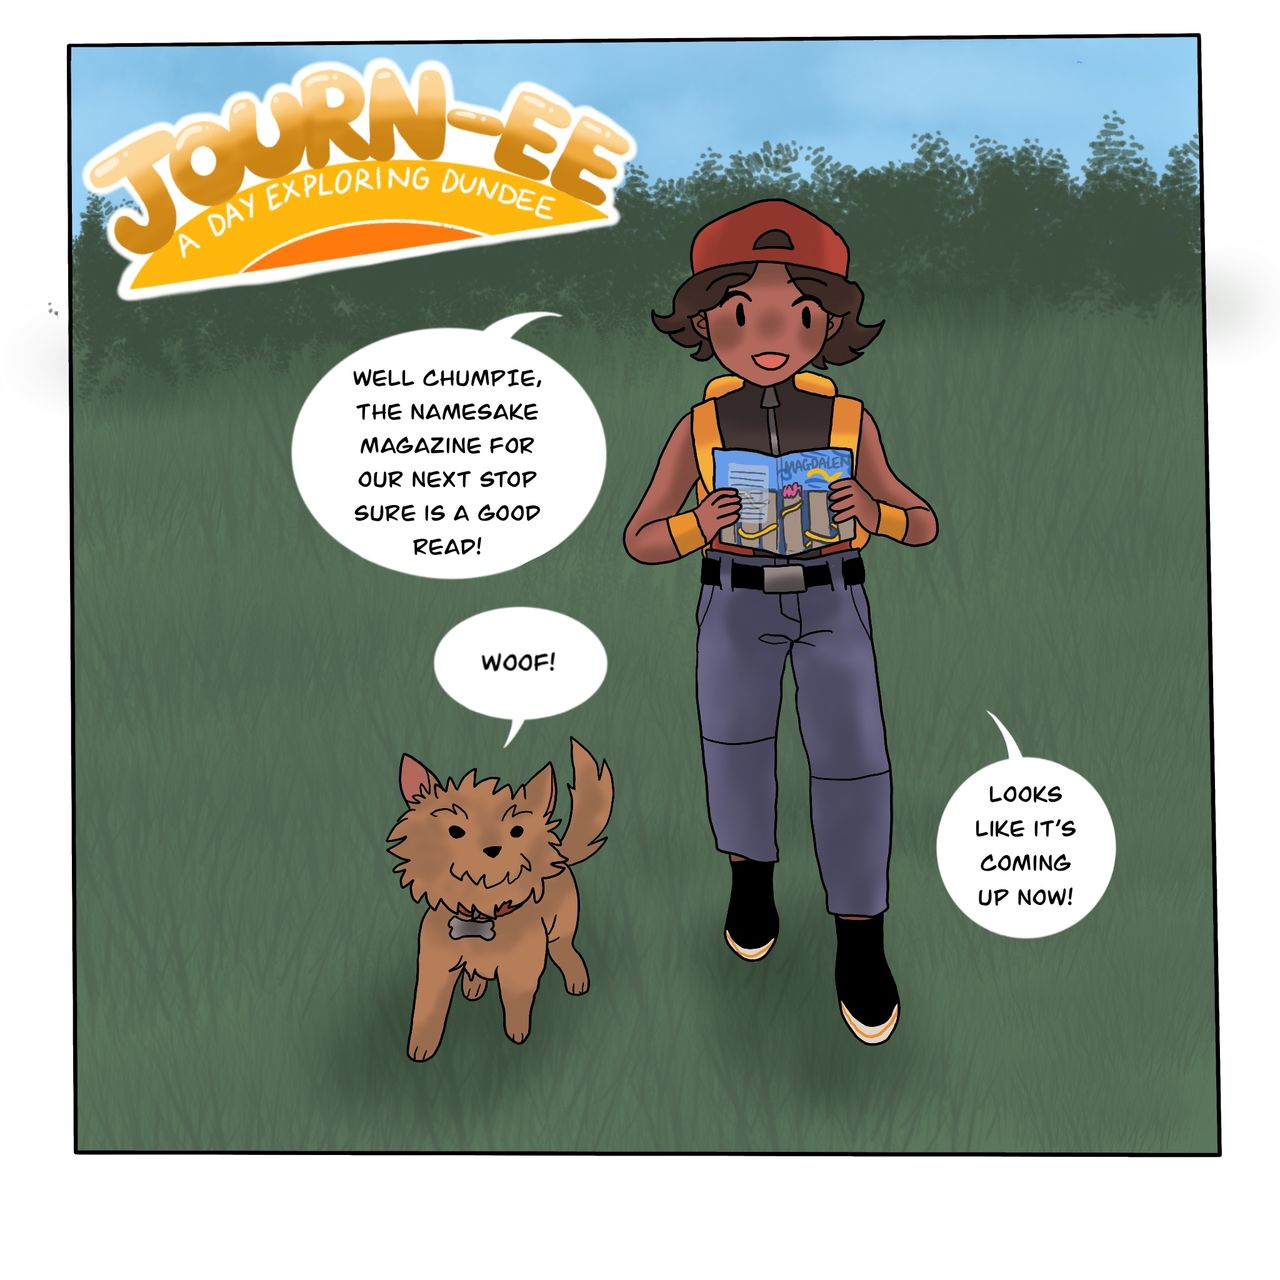 Start of a new comic. This single panel shows a character and their dog walking, reading the Magdalen Green magazine looking for sights.